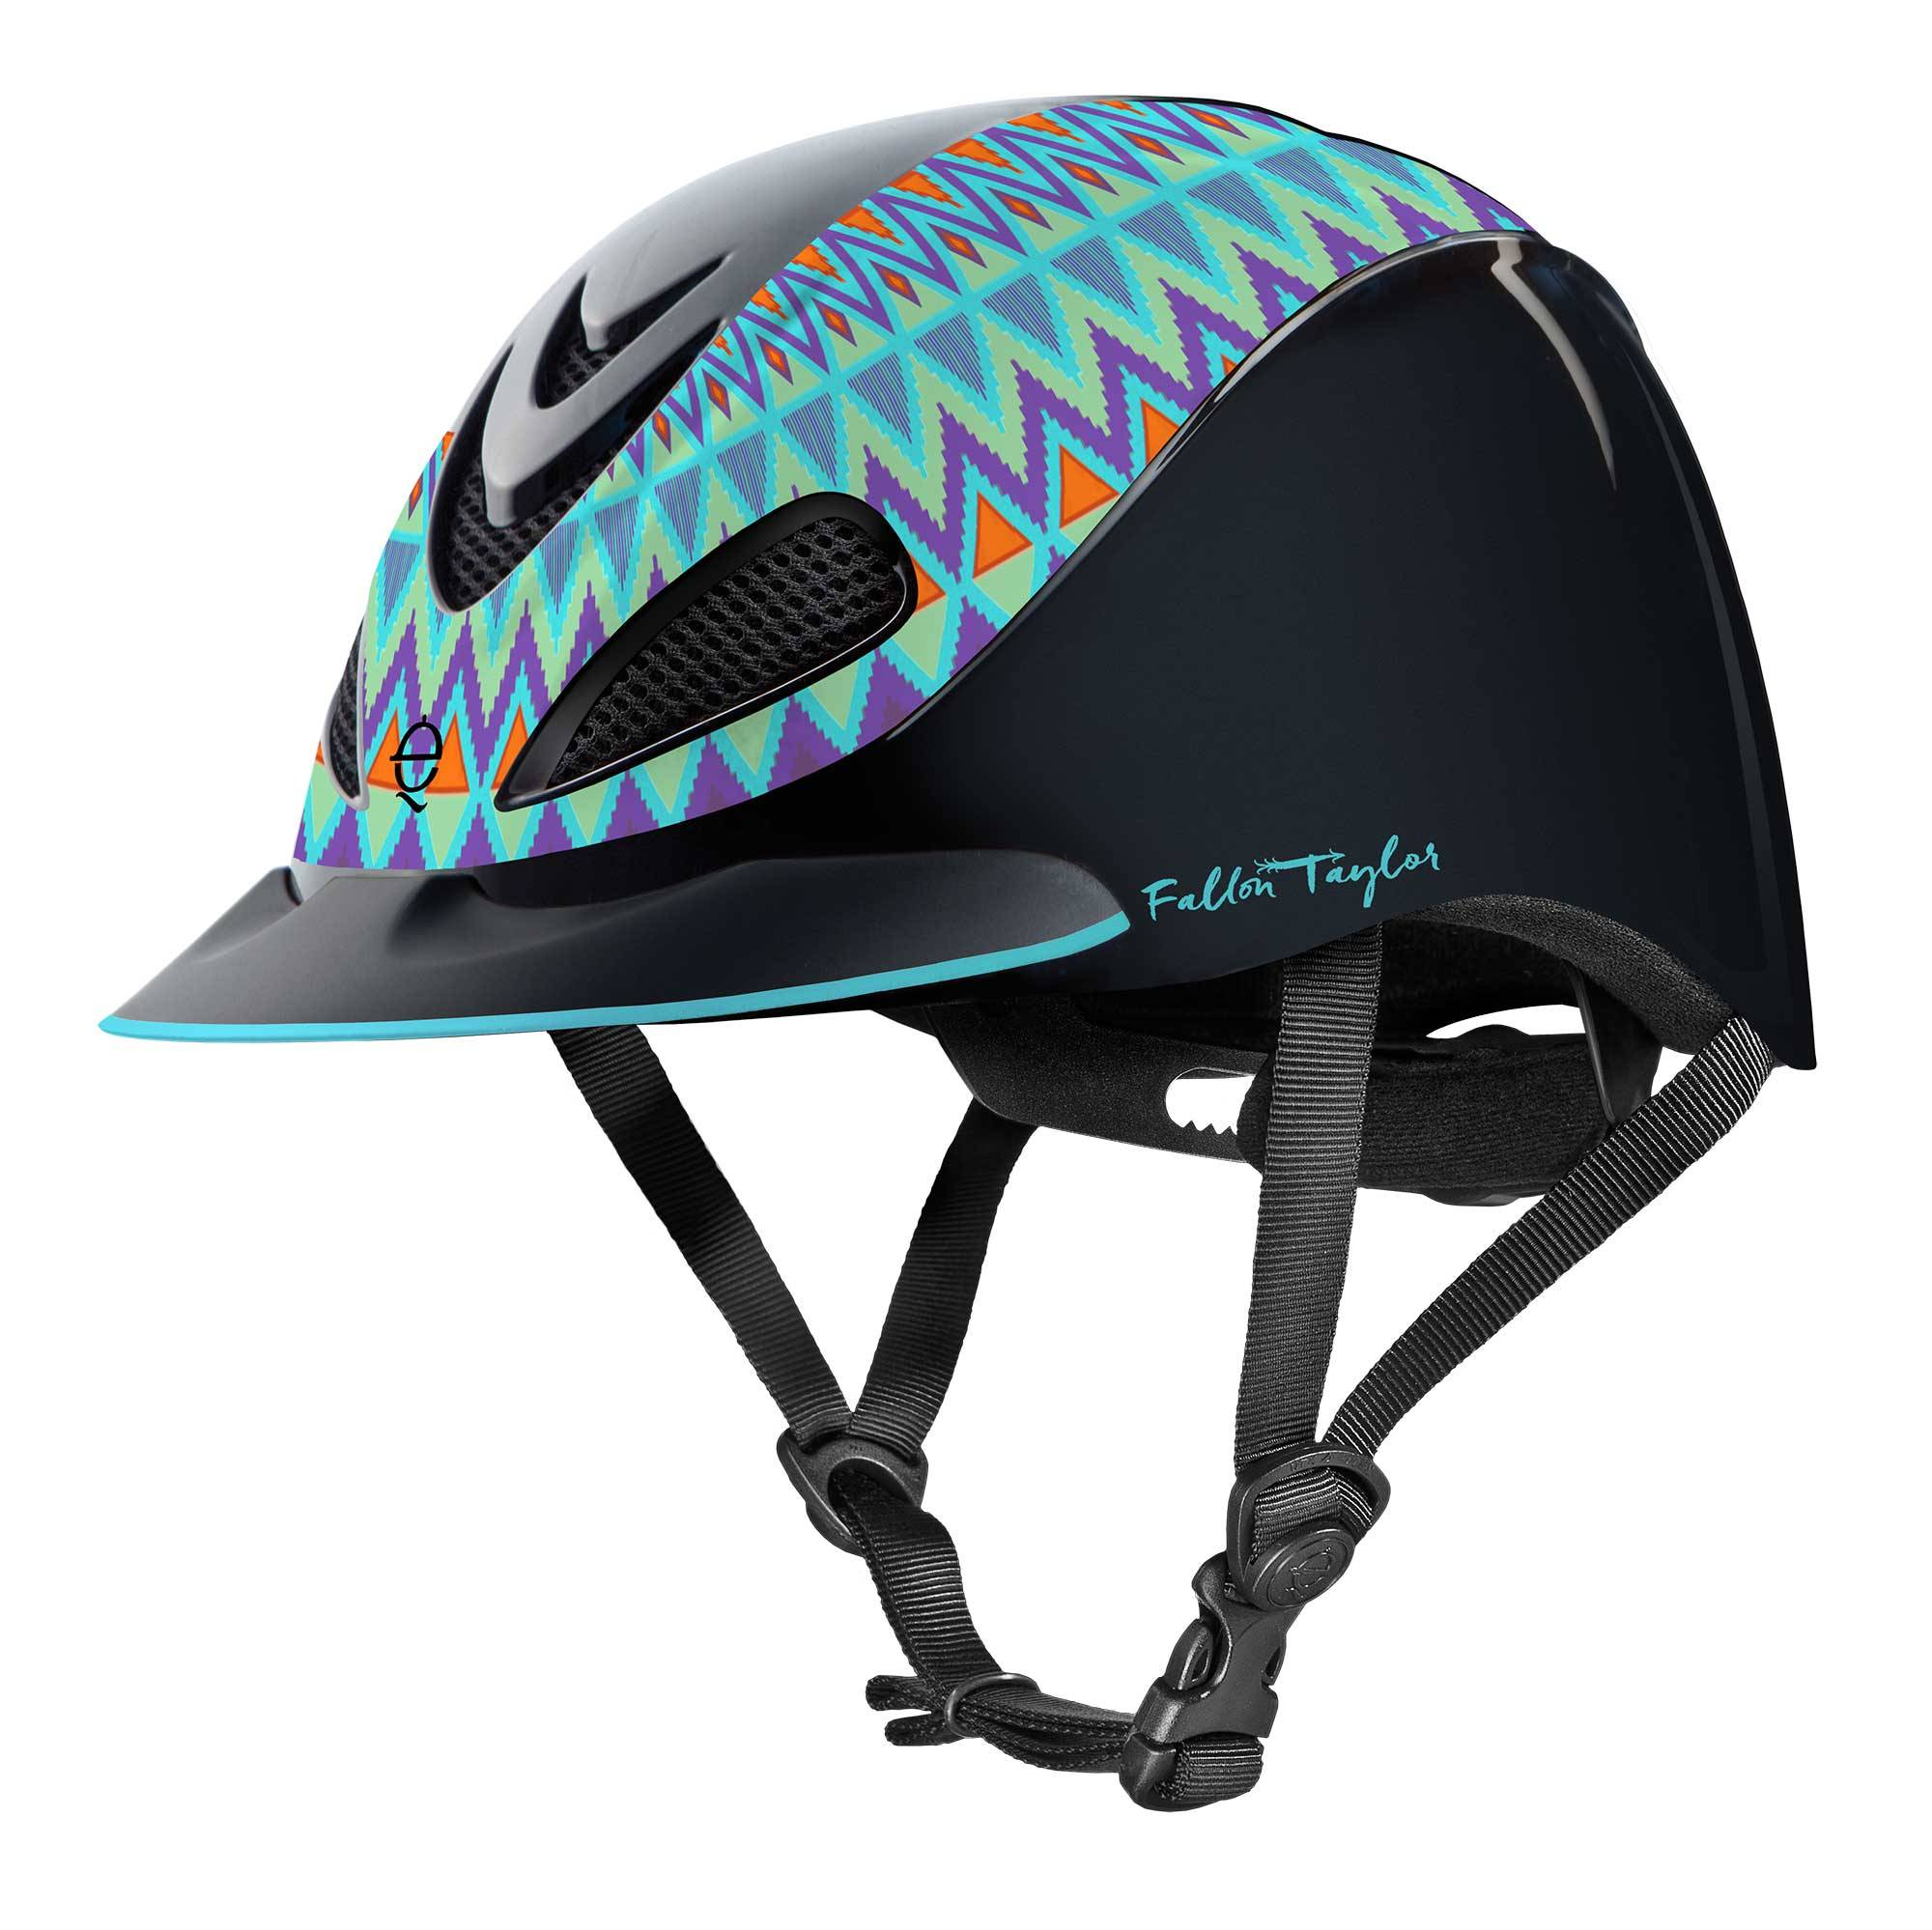 Troxel Fallon Taylor Helmet - Turquoise Aztec - FREE Cap with Purchase